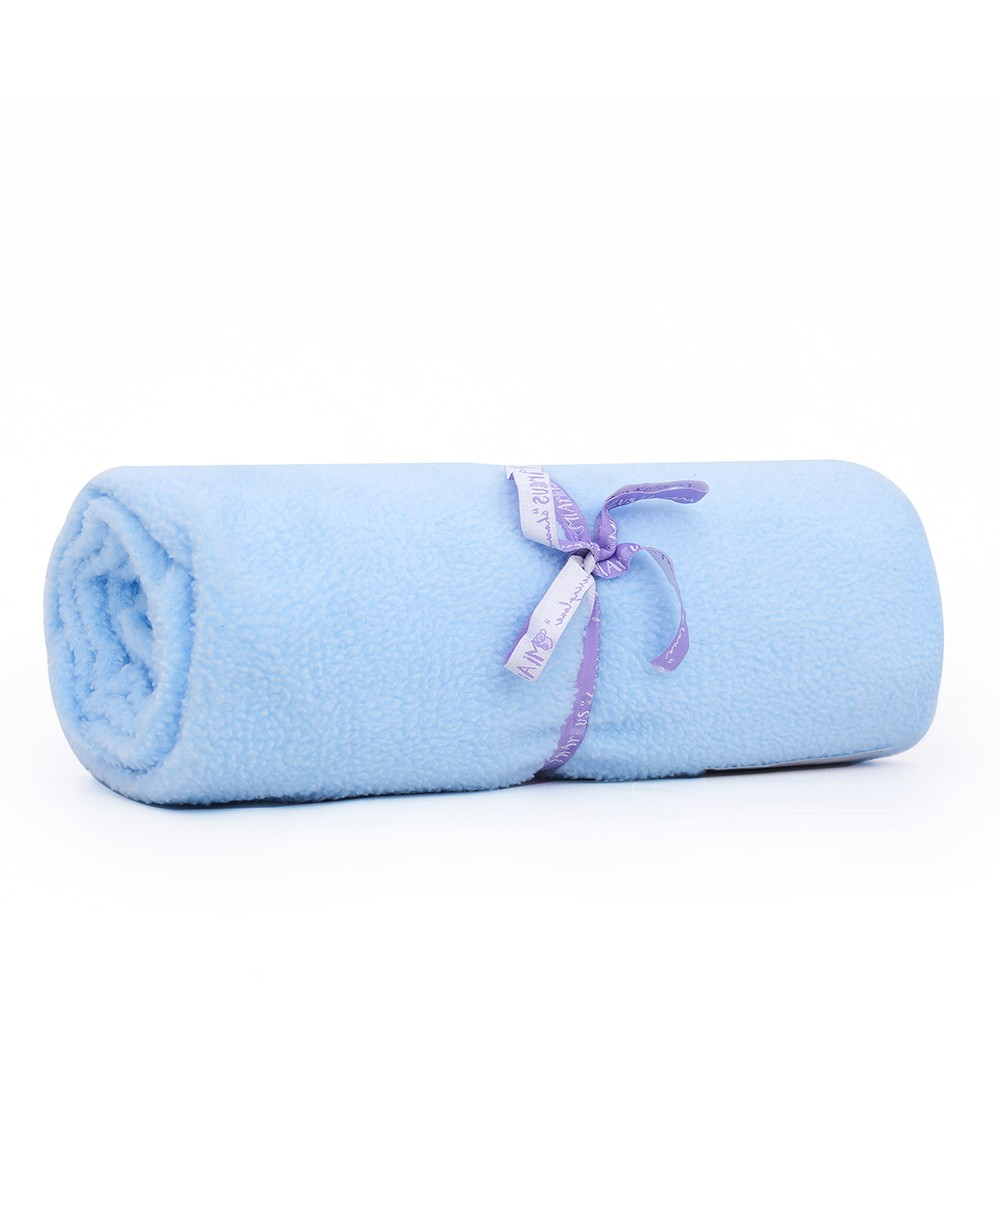 Wee Wee Knitted Mattress Protector - Arcus